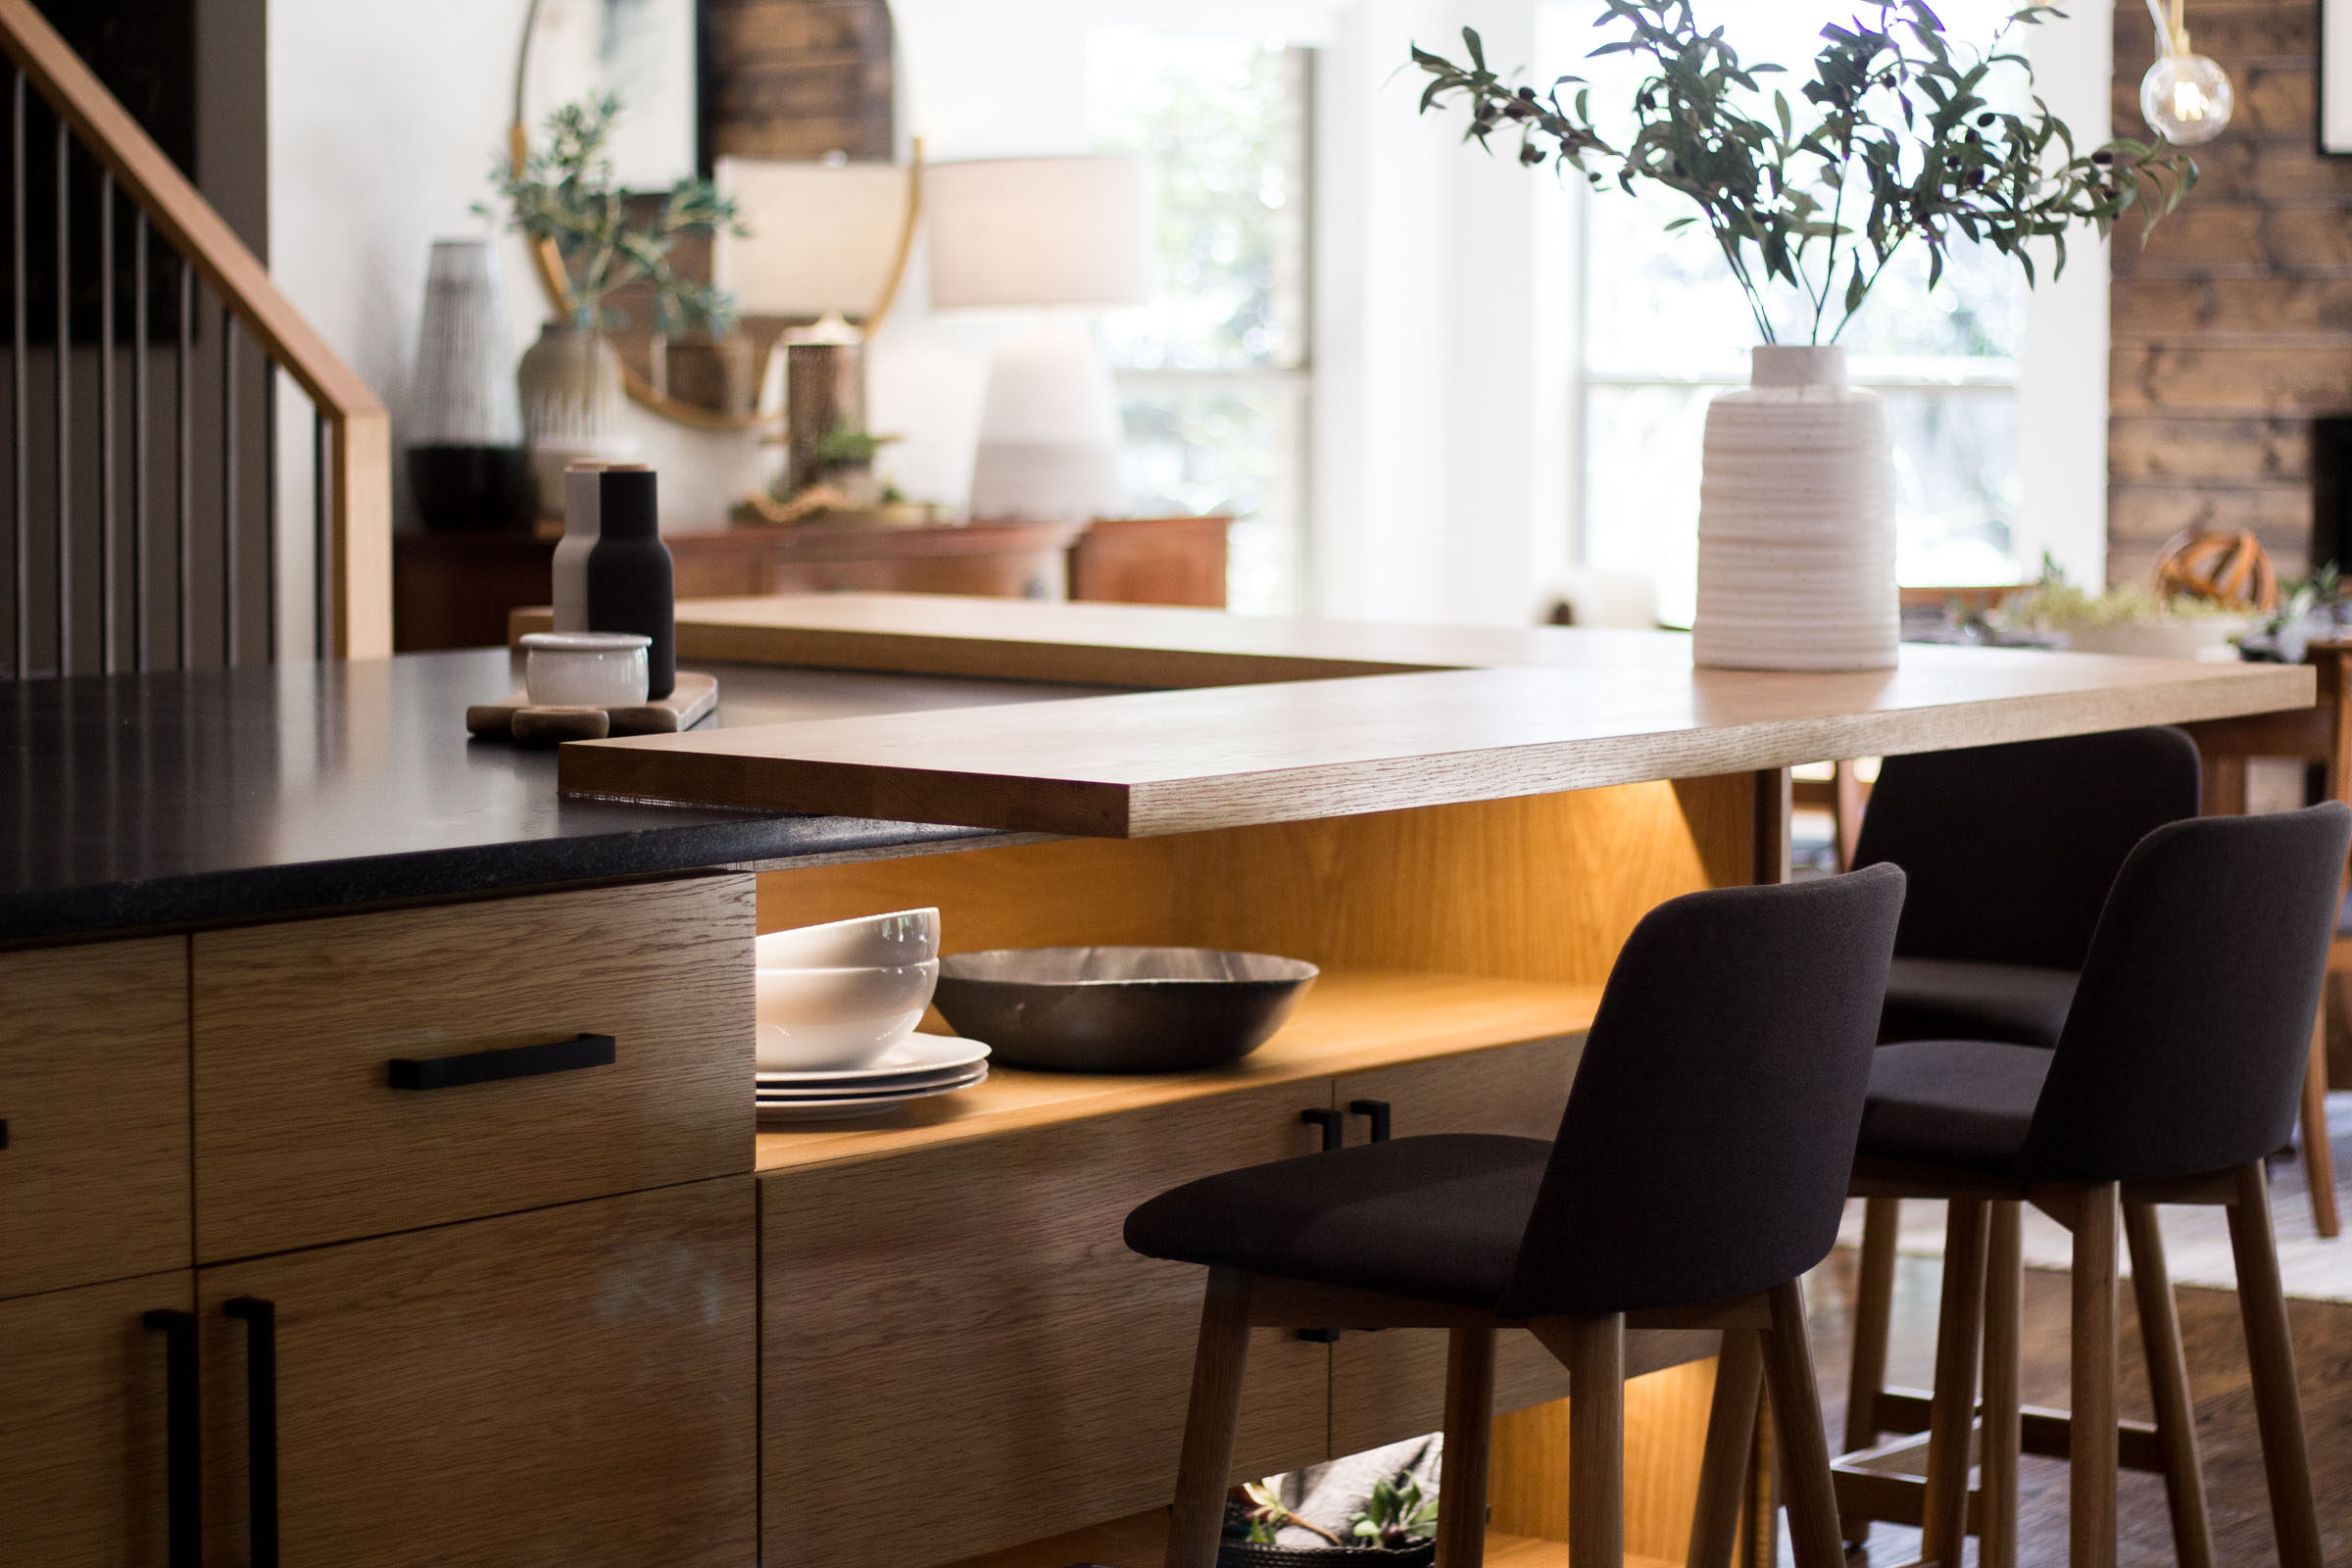 Cabinet under lighting with open cabinet space for kitchen dishes. Blonde wood cabinets, black cloth bar stools, plants, open floor plan.